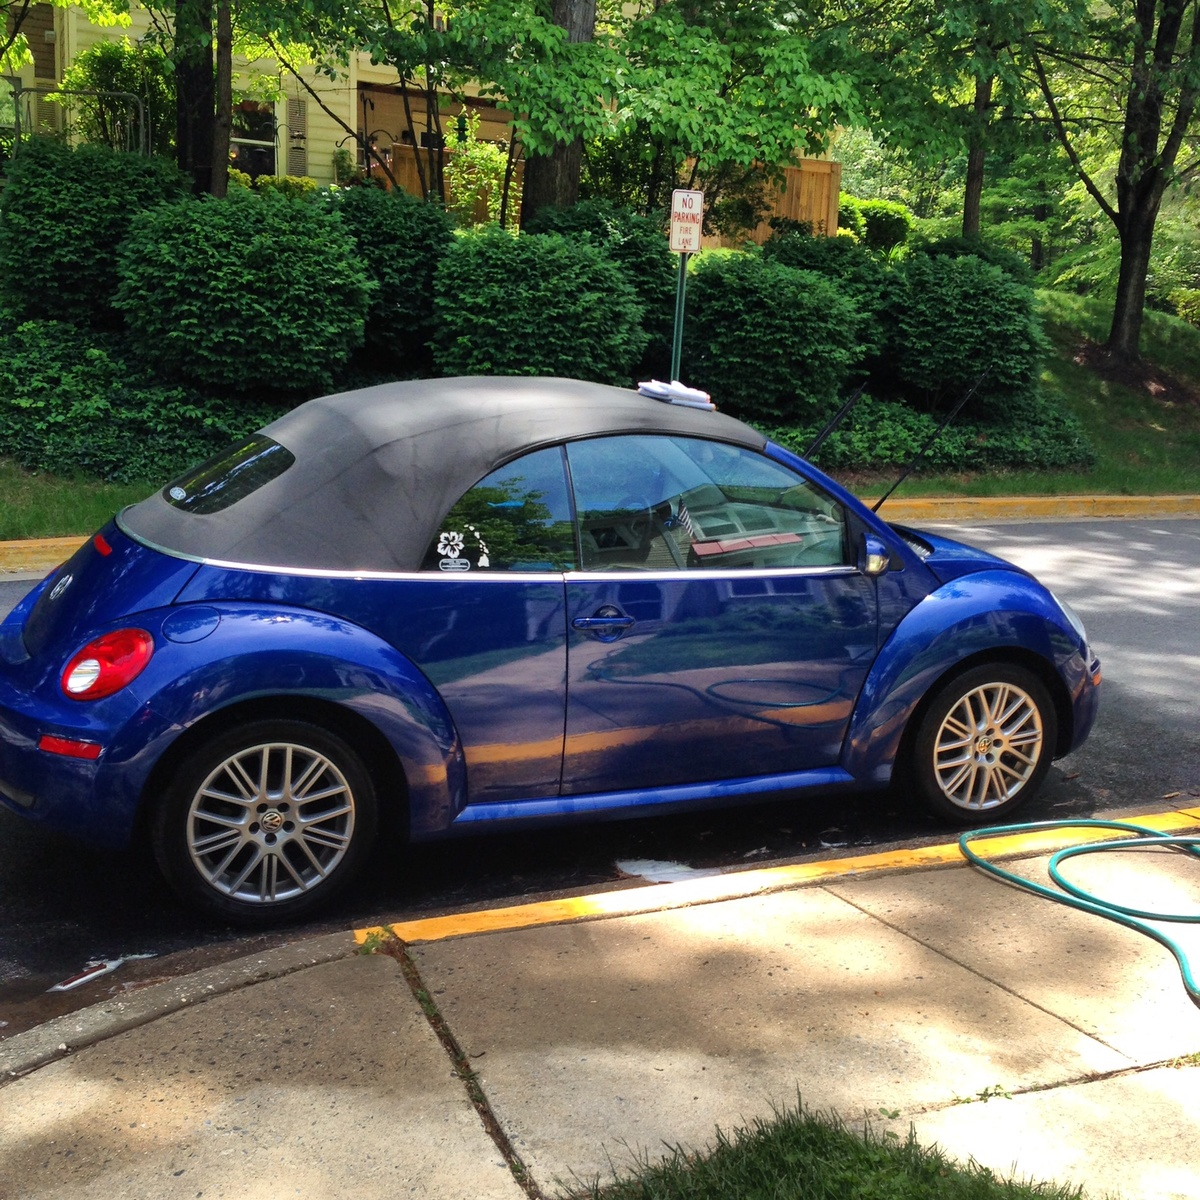 Volkswagen Beetle Questions - The Emissions Light